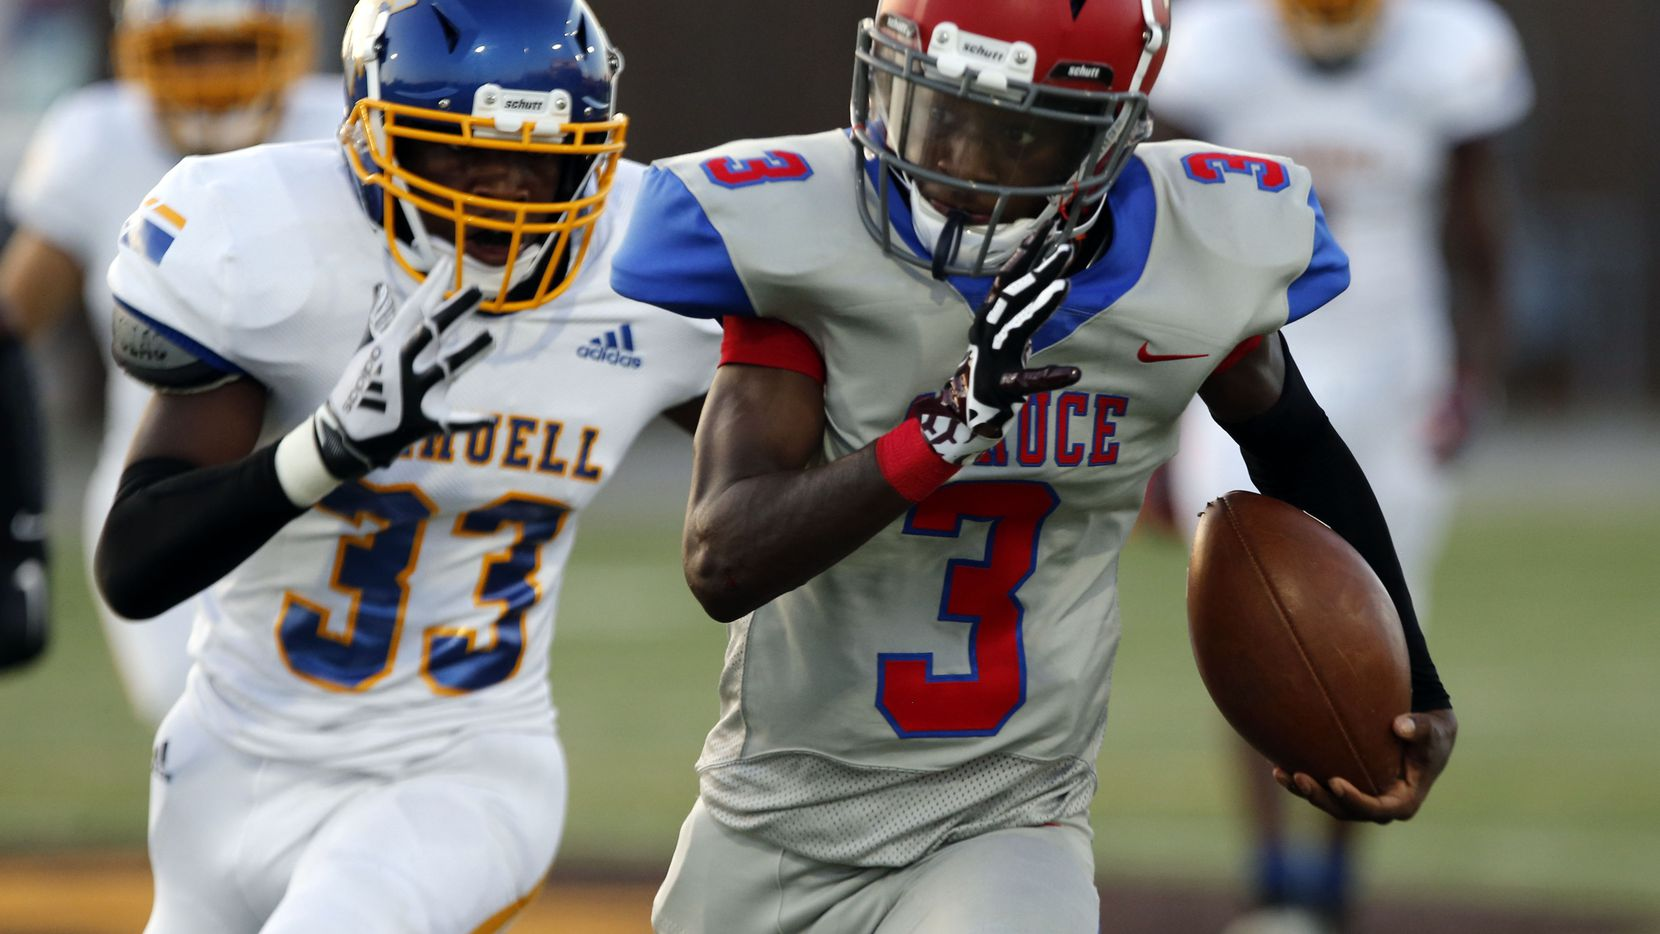 Samuell High defender Sharray Savage (33) chases Spruce QB Timad Cotton (3) during the first half of the season opening high school football game between against Samuell and Spruce High at Pleasant Grove Stadium in Dallas on Friday, August 27, 2021. (John F. Rhodes / Special Contributor)